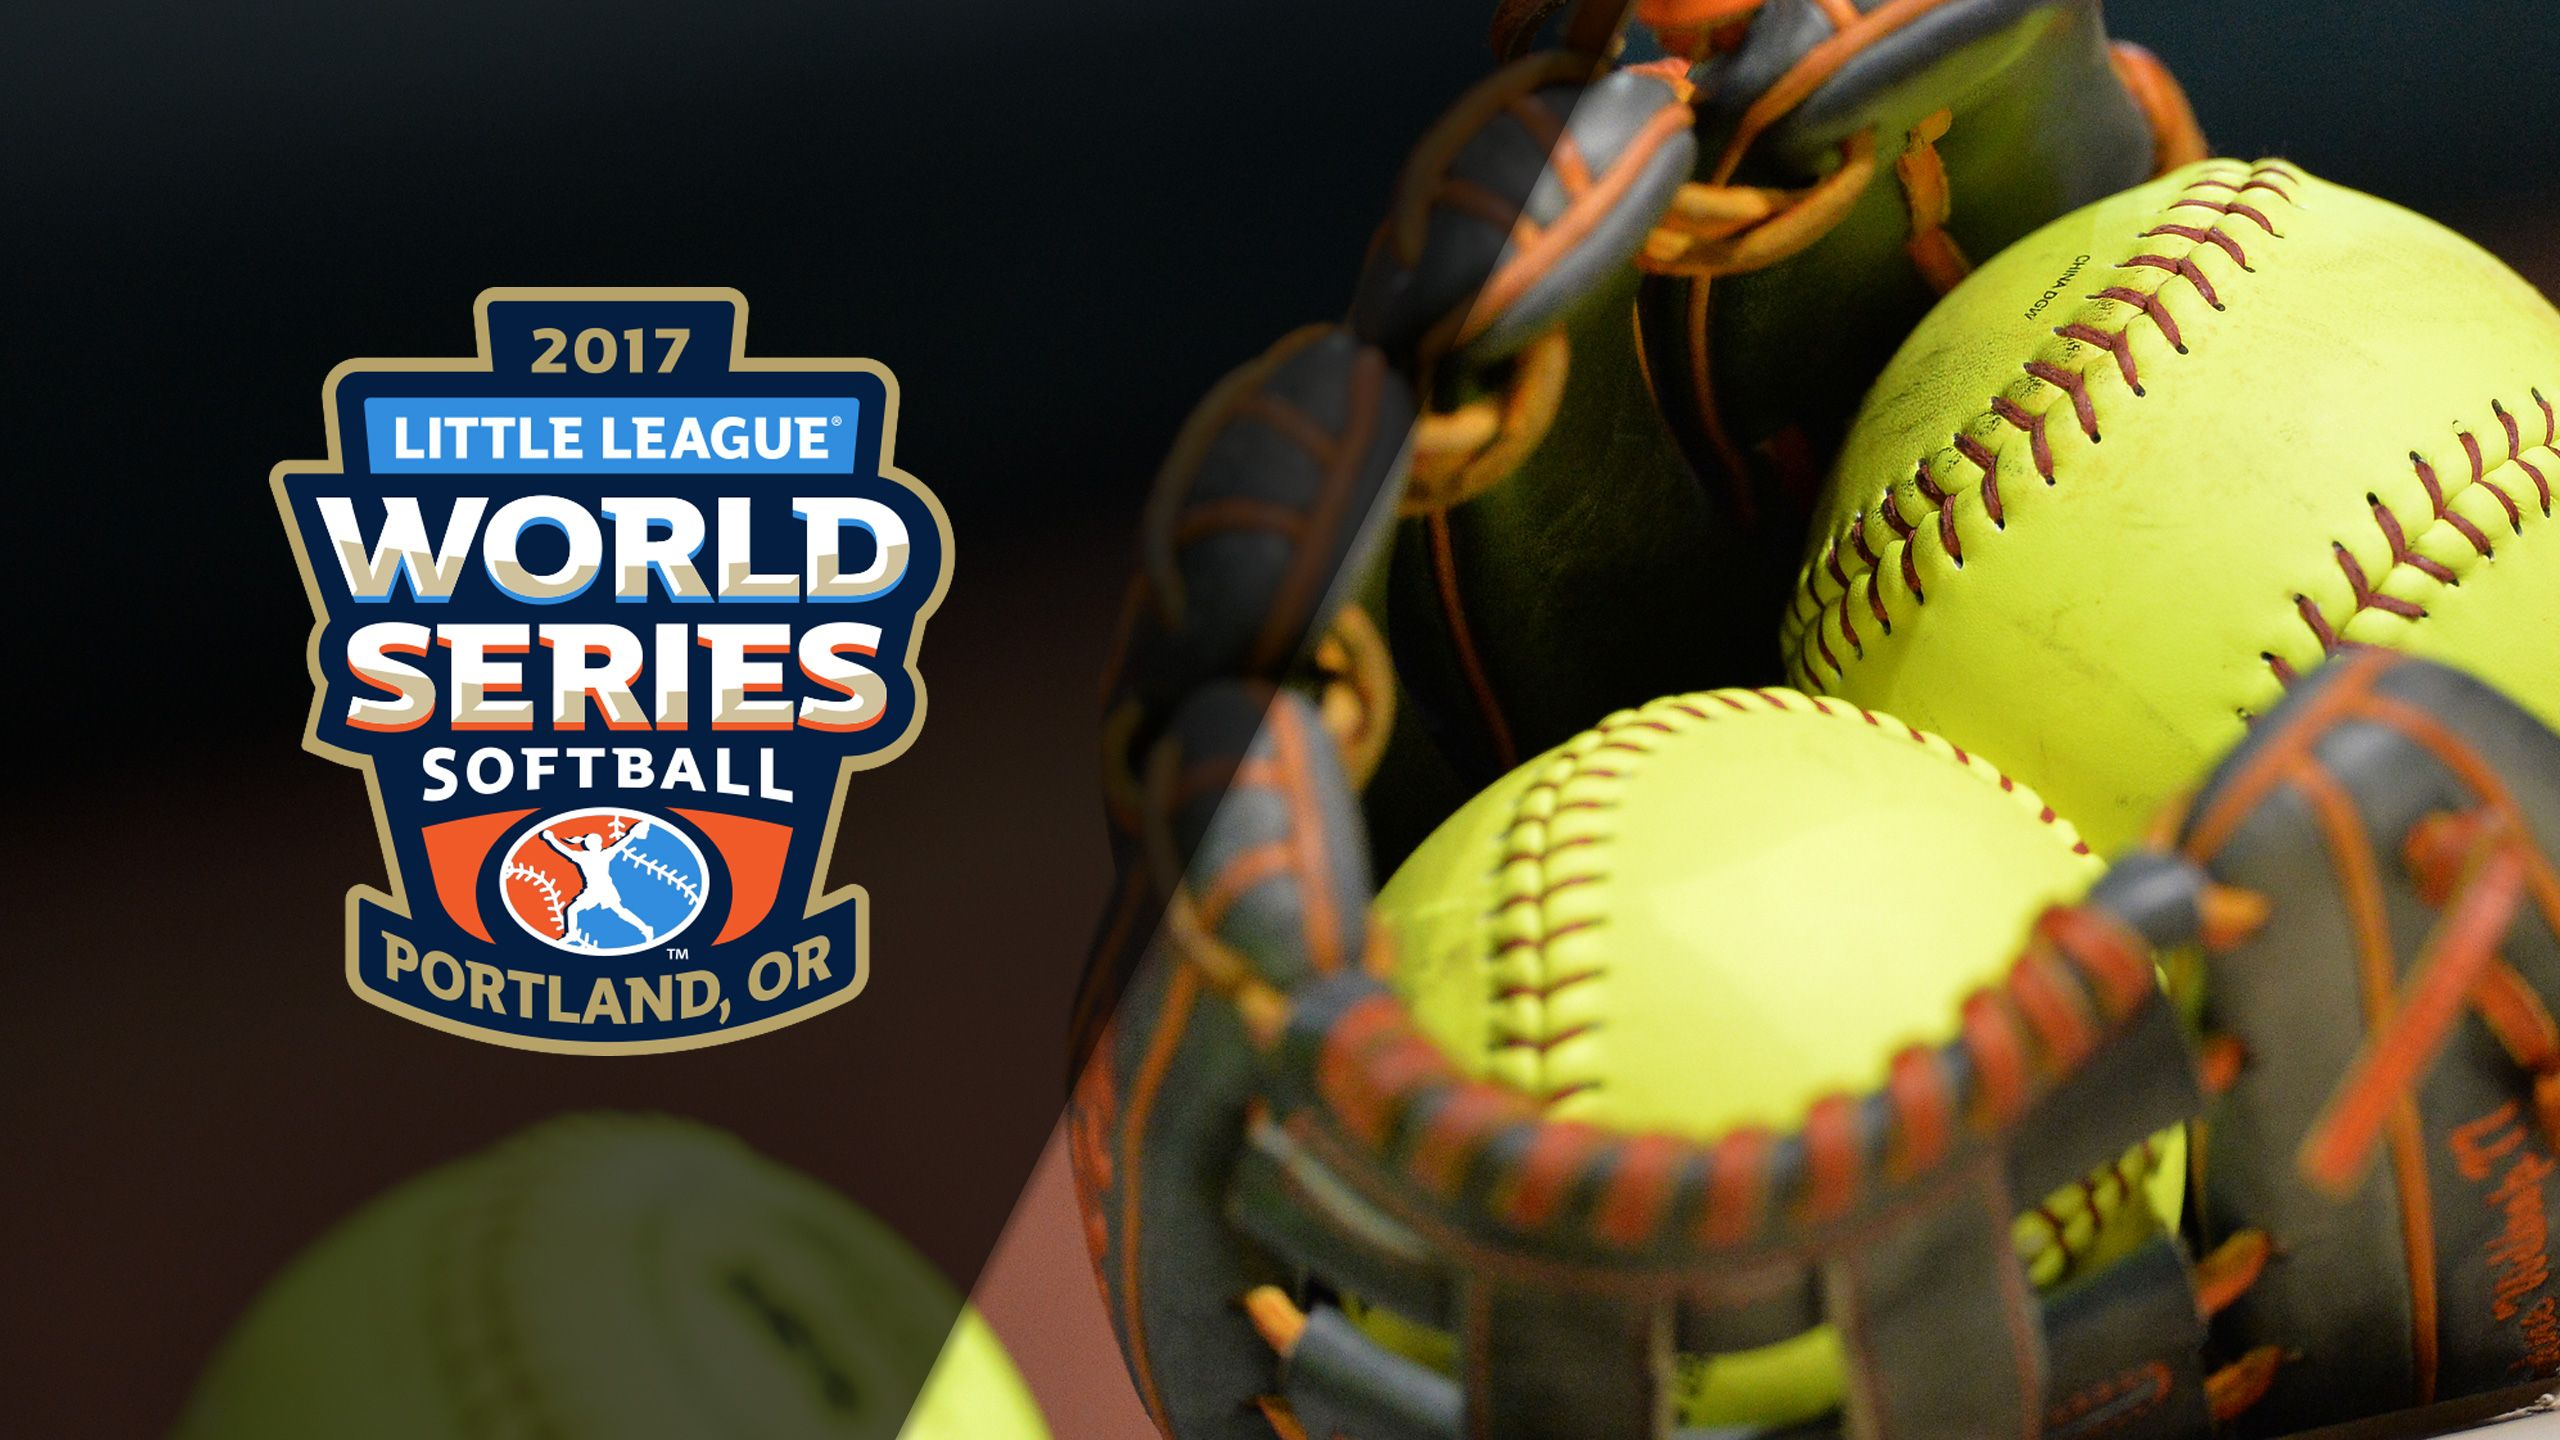 Salisbury NC vs. WACO, Texas (Little League Softball World Series) (re-air)